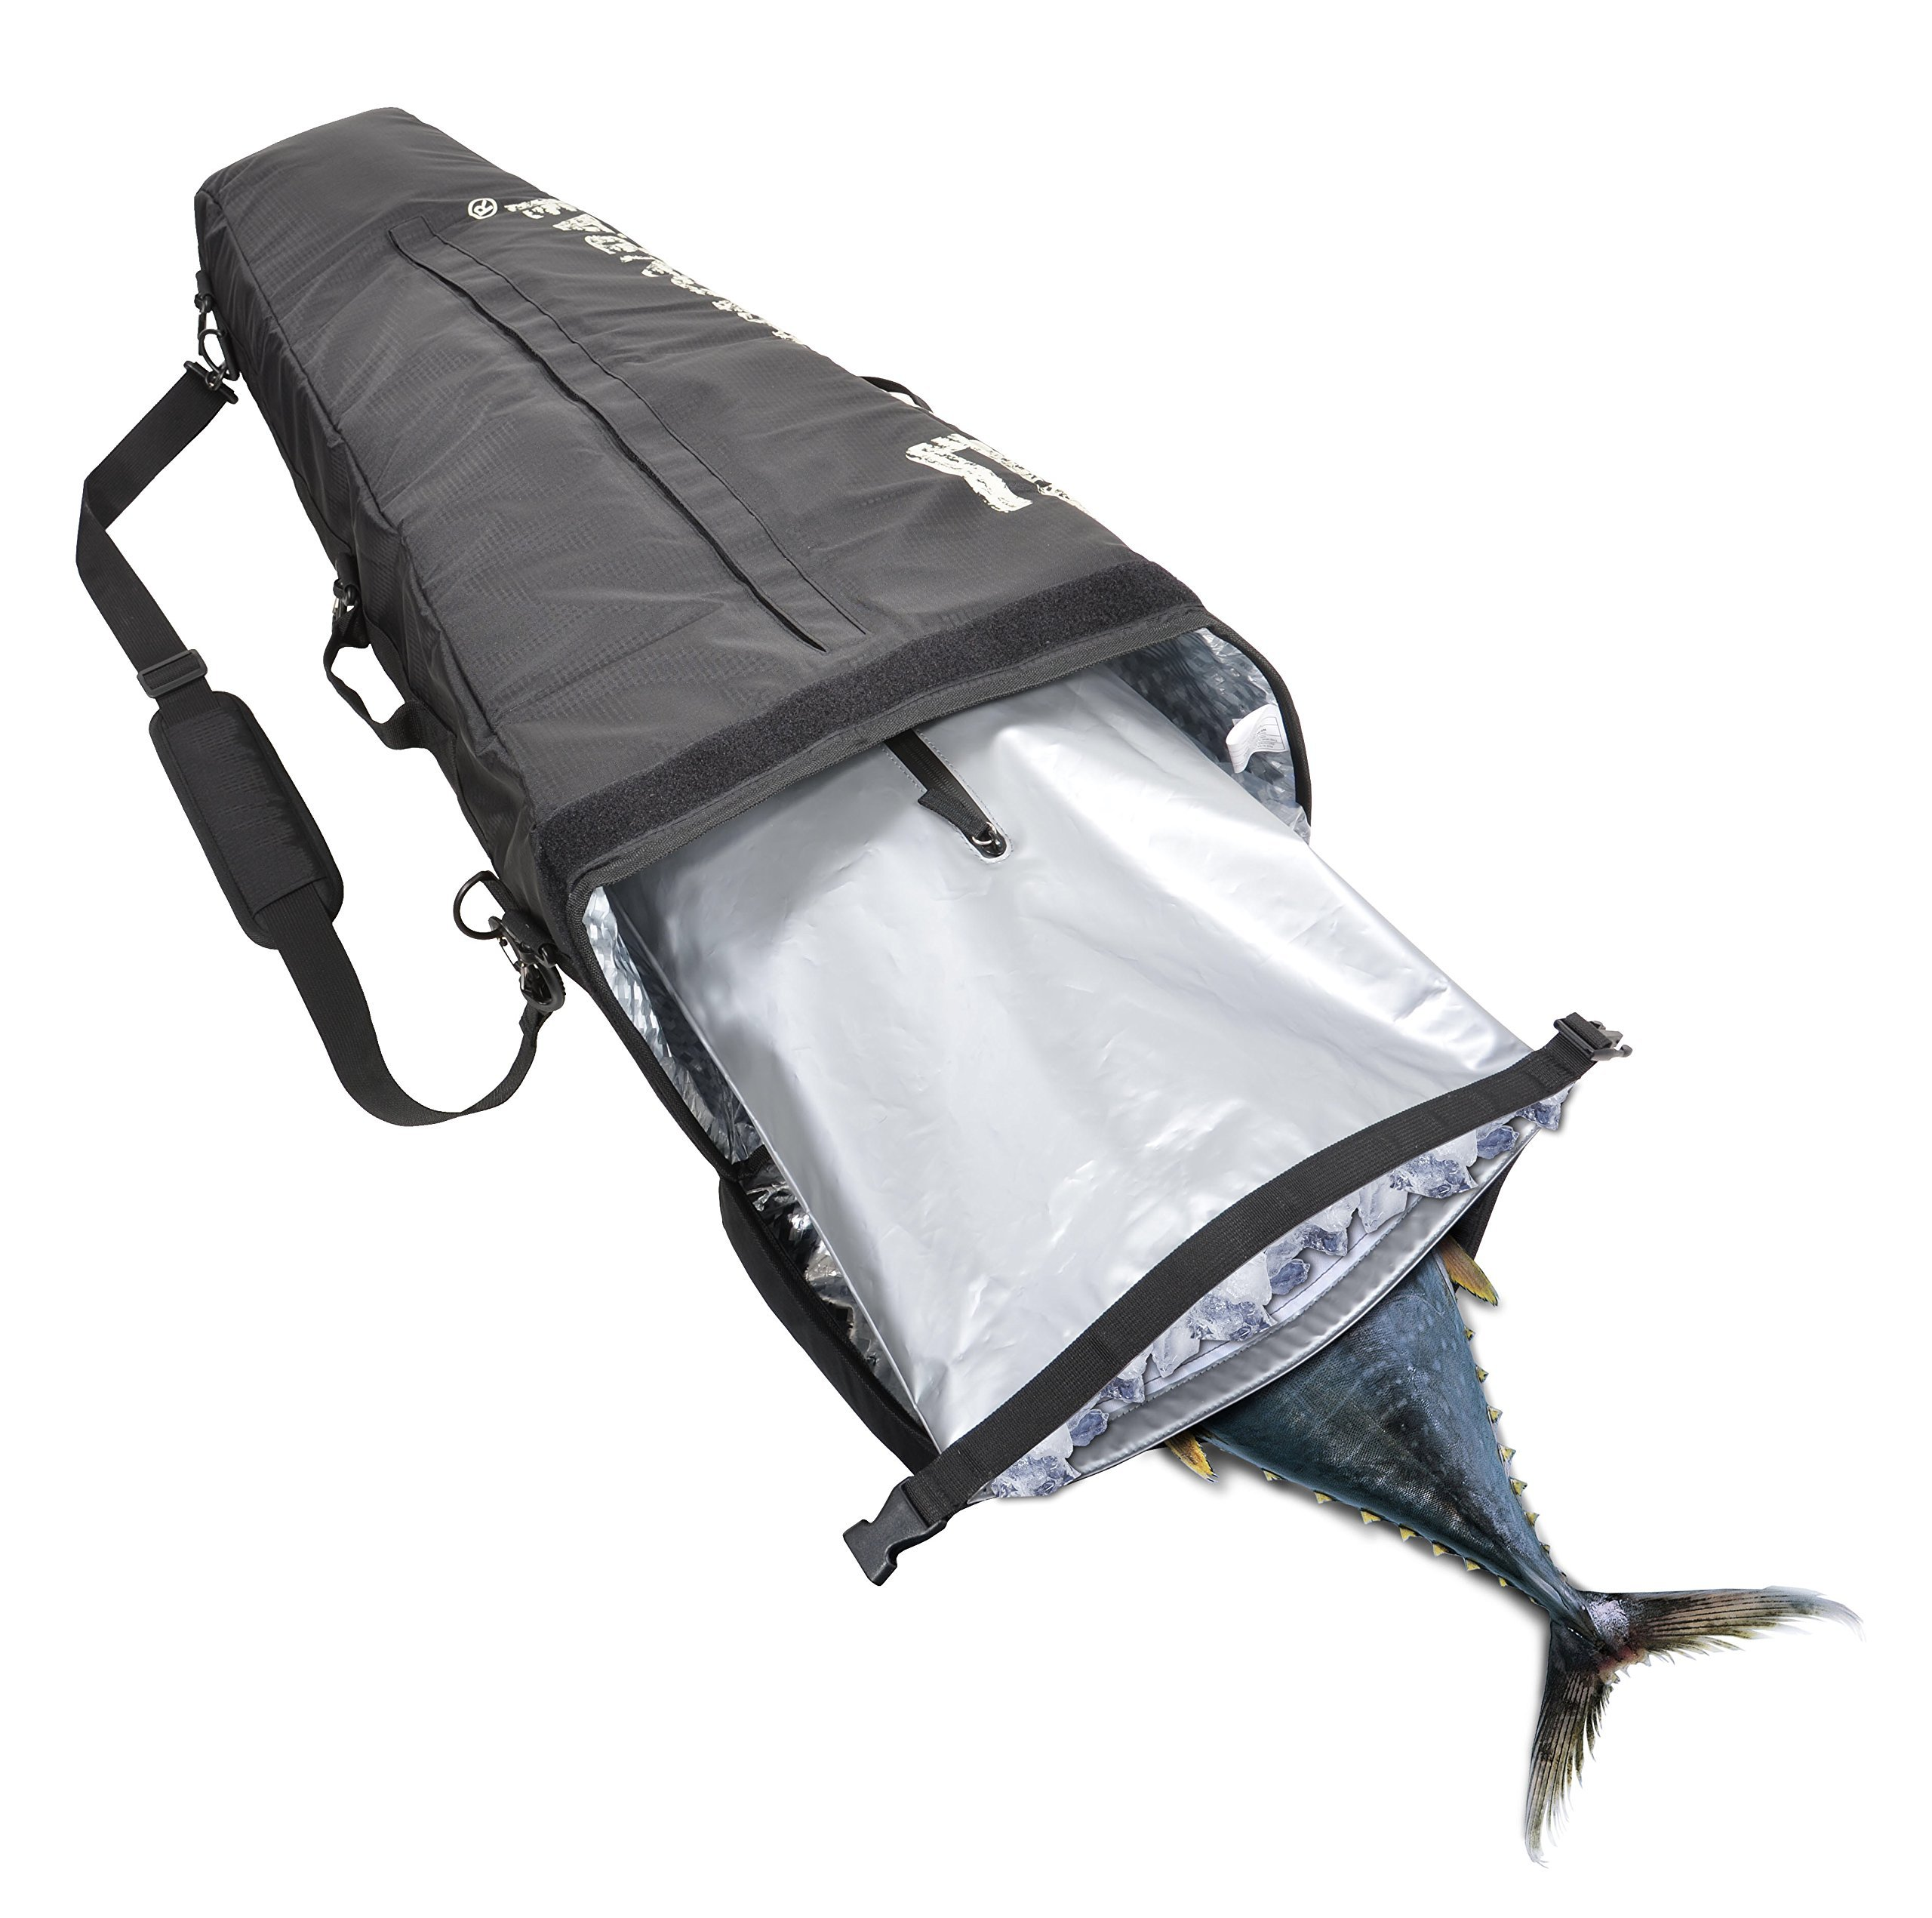 Adjustable Attachment Straps Kayak Fishing Cooler Removable Liner Seattle Sports Roll Catch Cooler Built USA